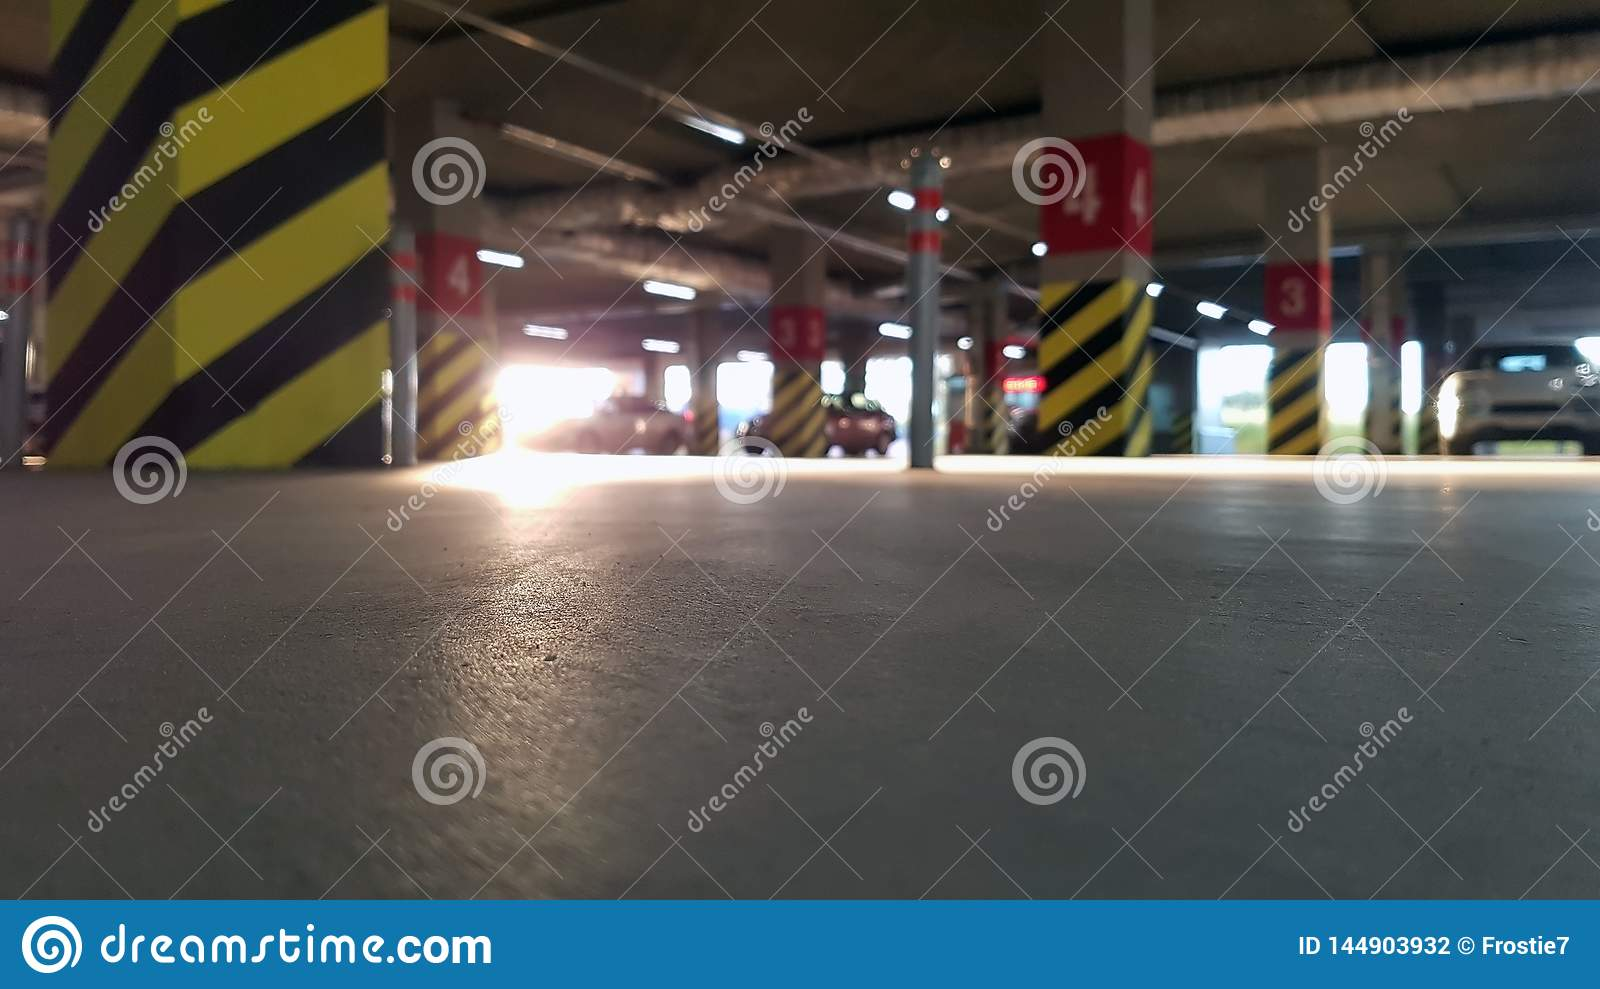 Underground Parking with cars on a Sunny day